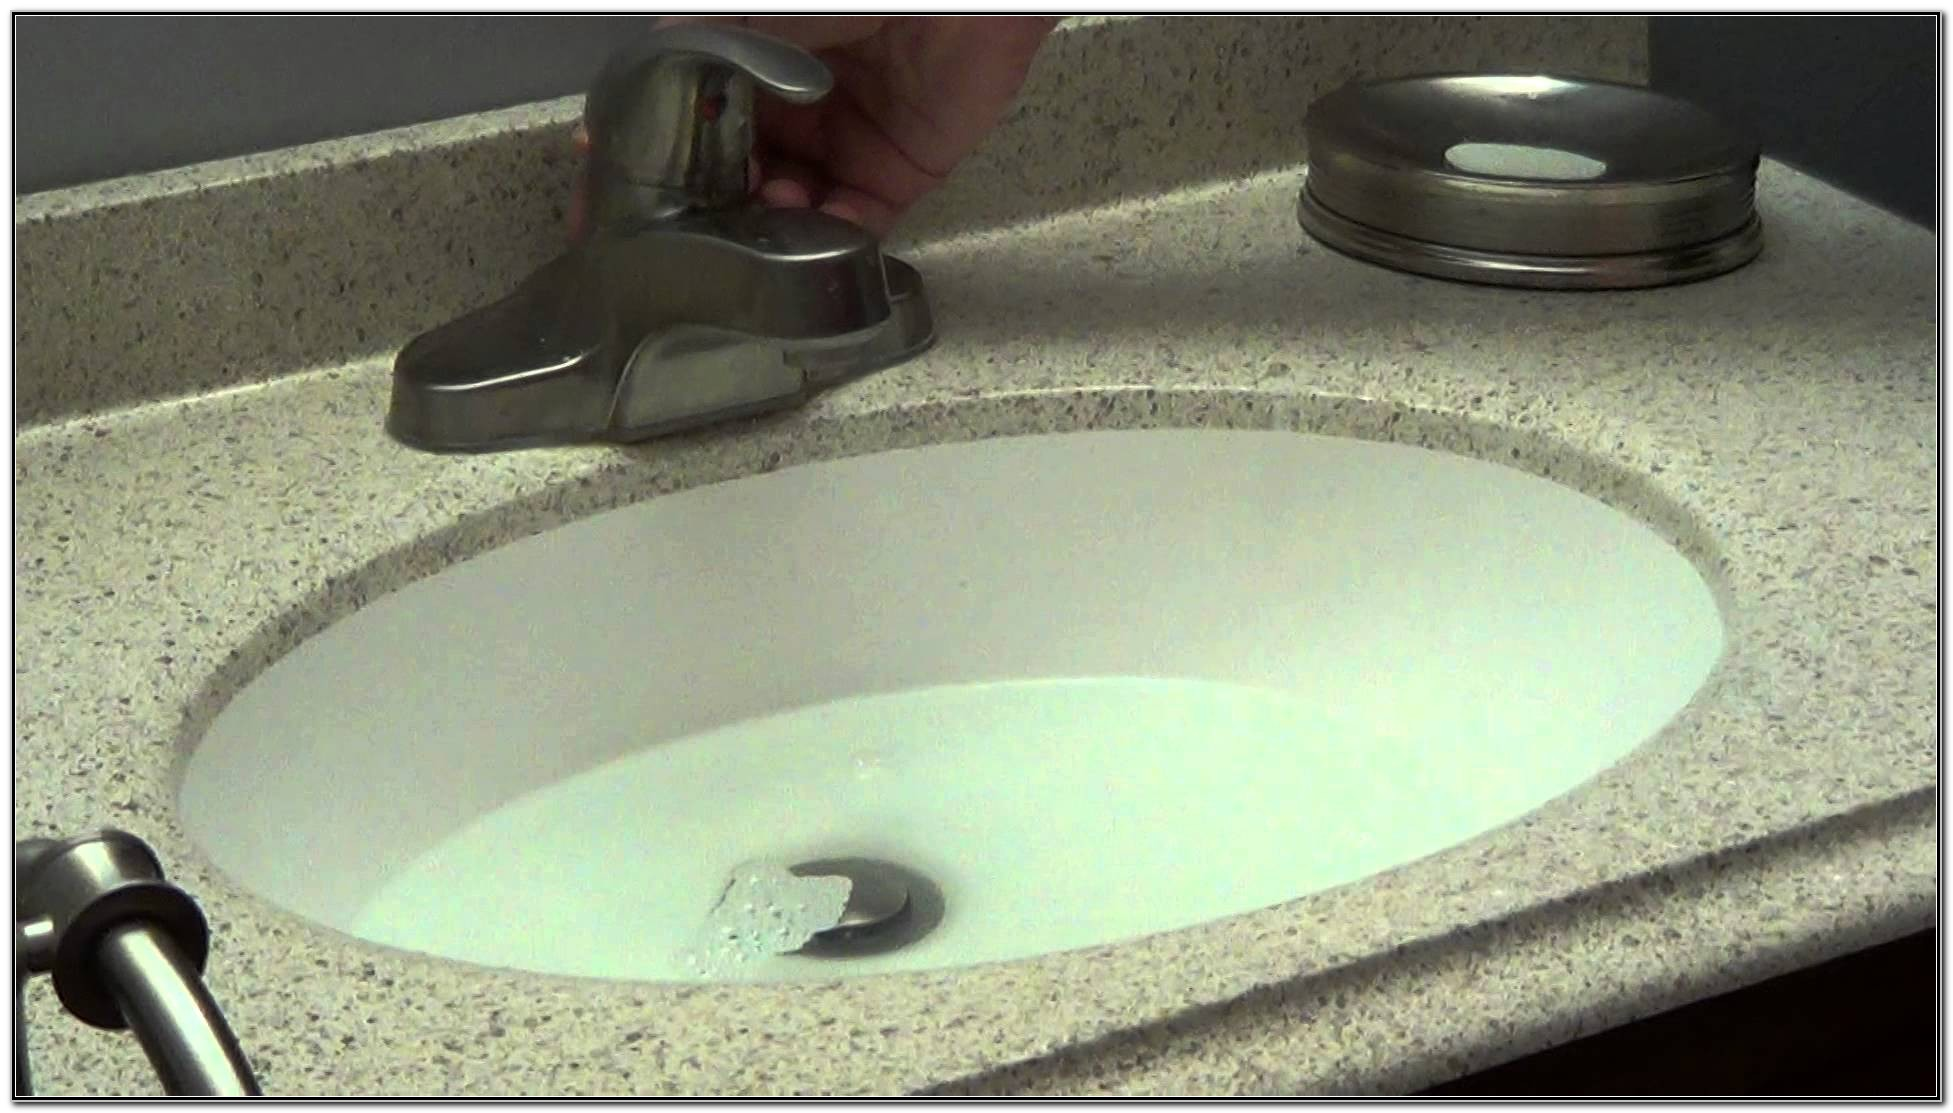 How To Unclog A Bathroom Sink With Standing Water | Bathroom Sink Drain Clogged Standing Water Sink And